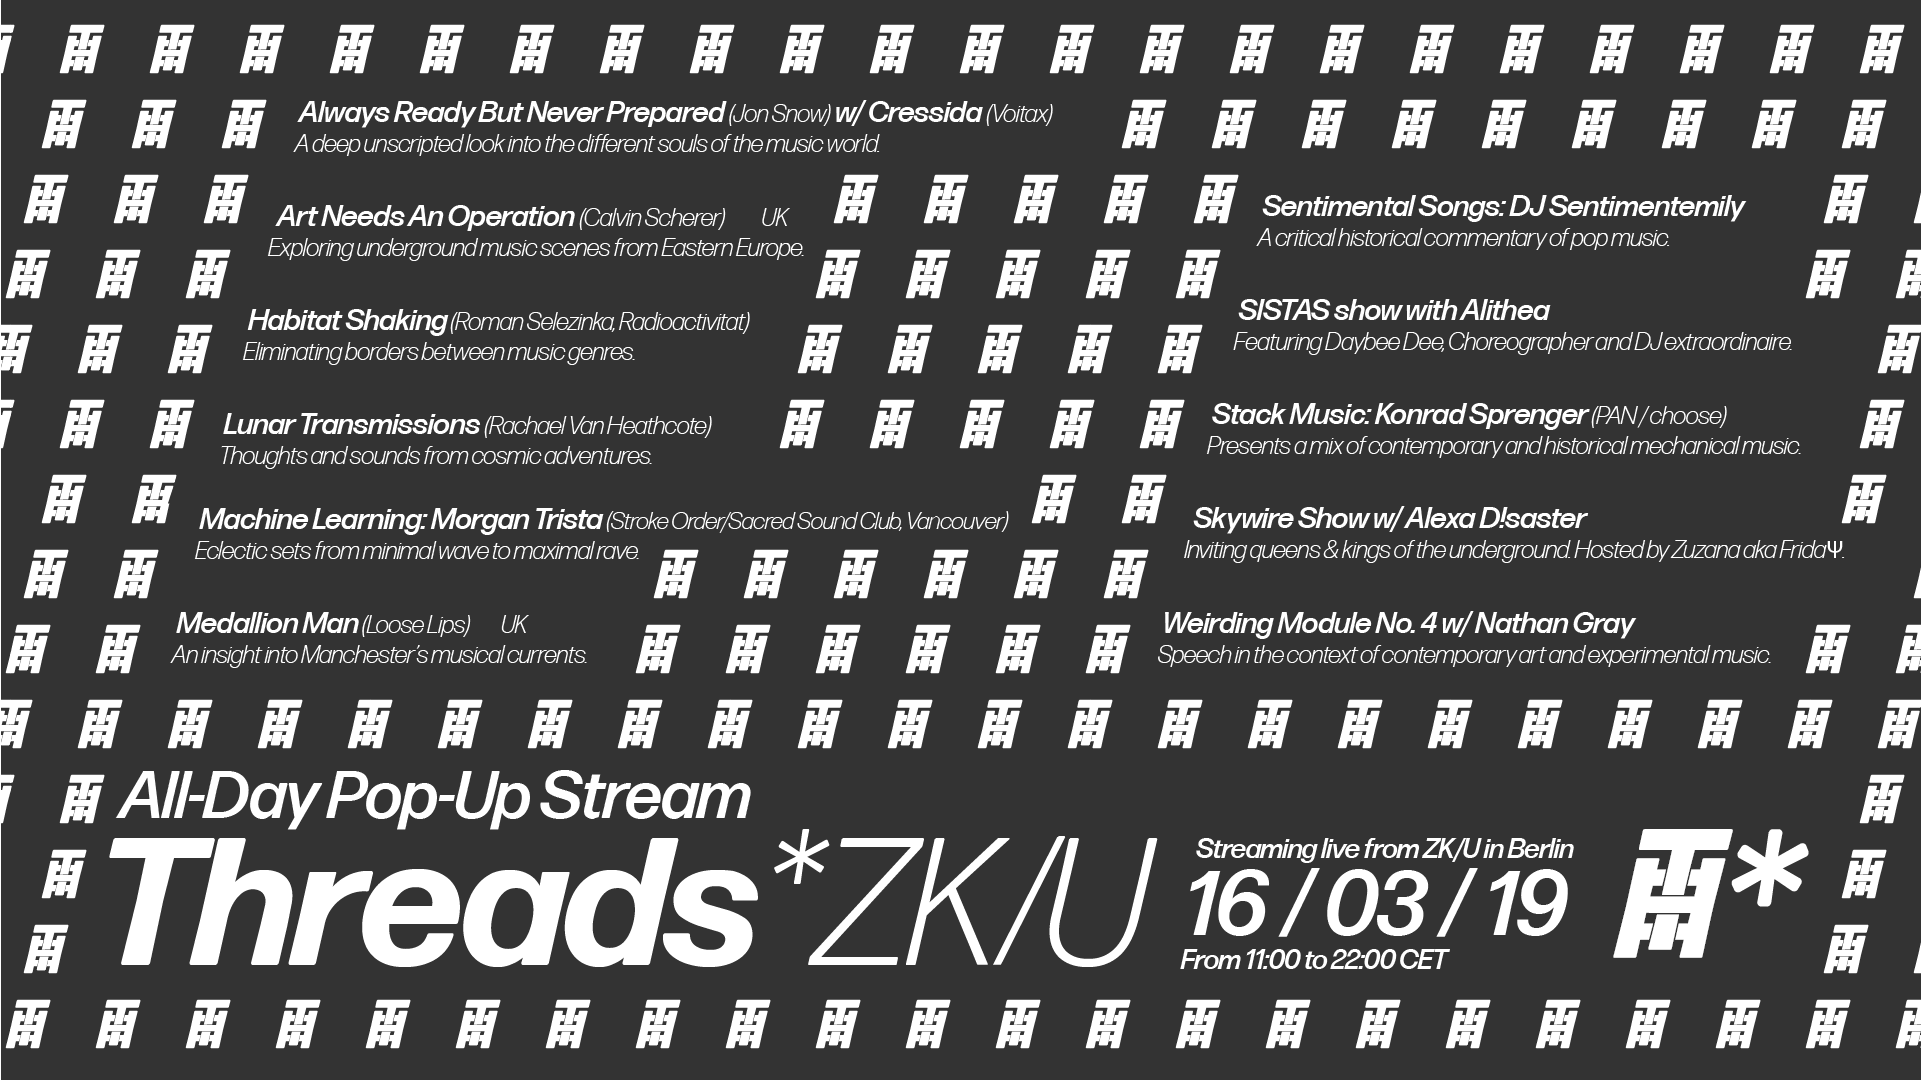 Threads*ZK/U Pop-Up #2 – All Day Stream (16/03/19)